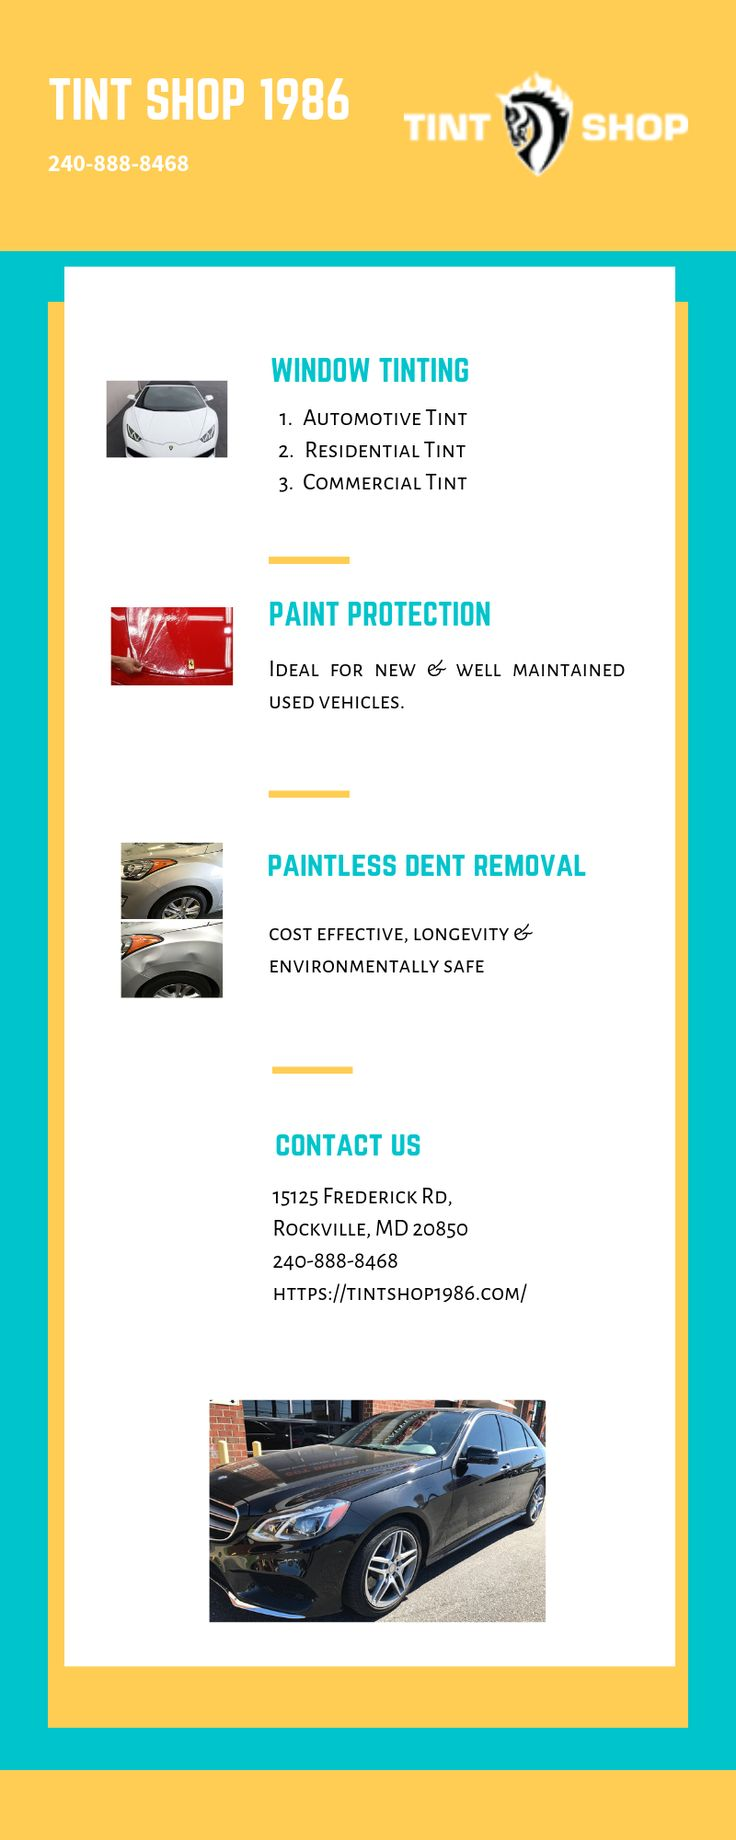 We are the Premier Window Tinting and Paint Protection